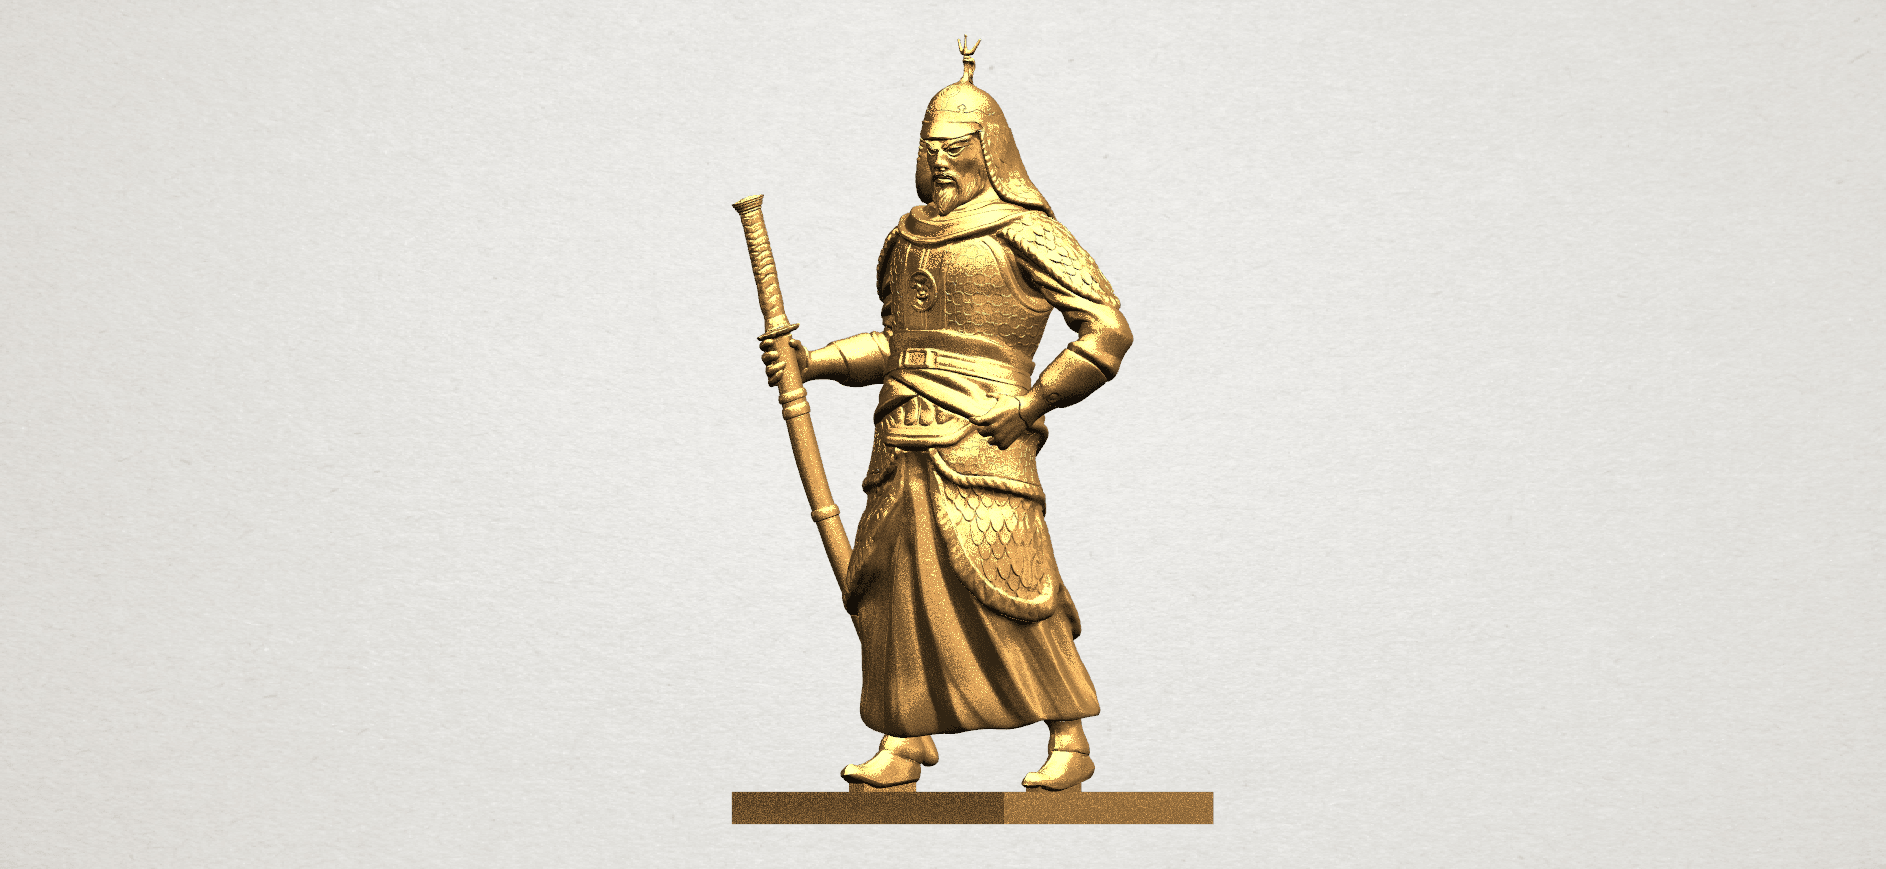 Age of Empire - warrior -C02.png Download free STL file Age of Empire - warrio • 3D print design, GeorgesNikkei